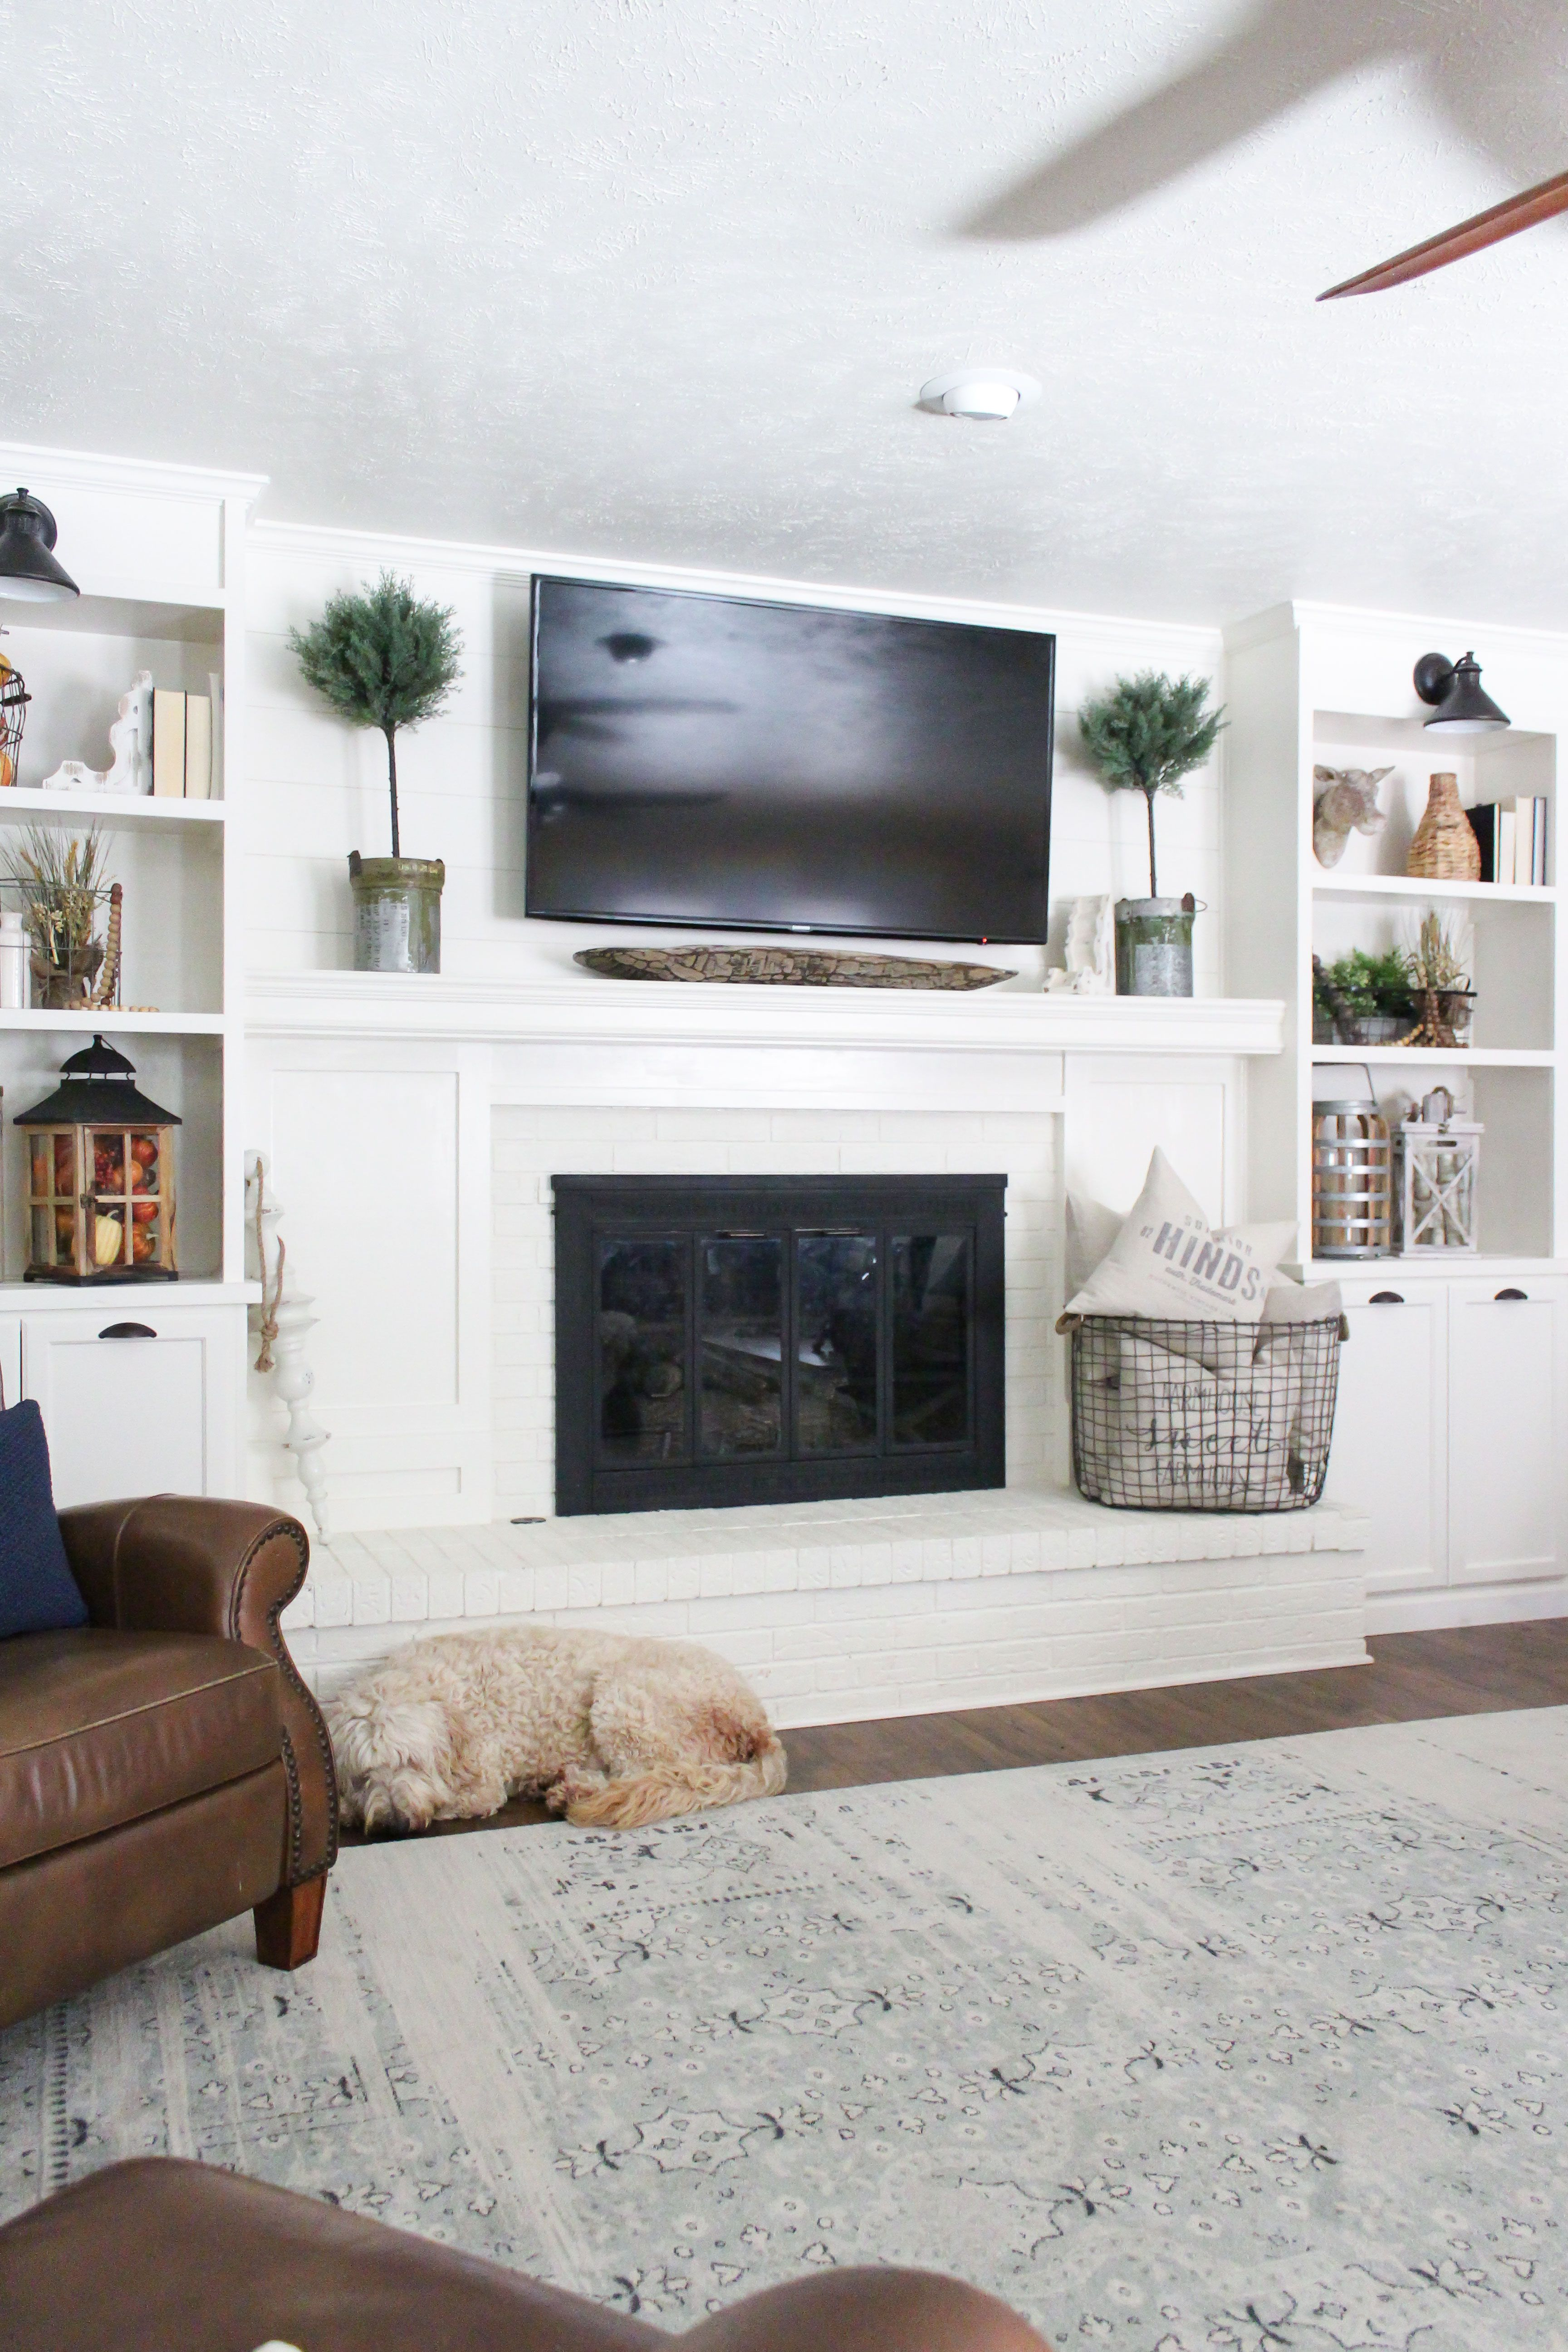 White Cabinets Around Fireplace 2021   Built in fireplace, Living room with fireplace, Home ...